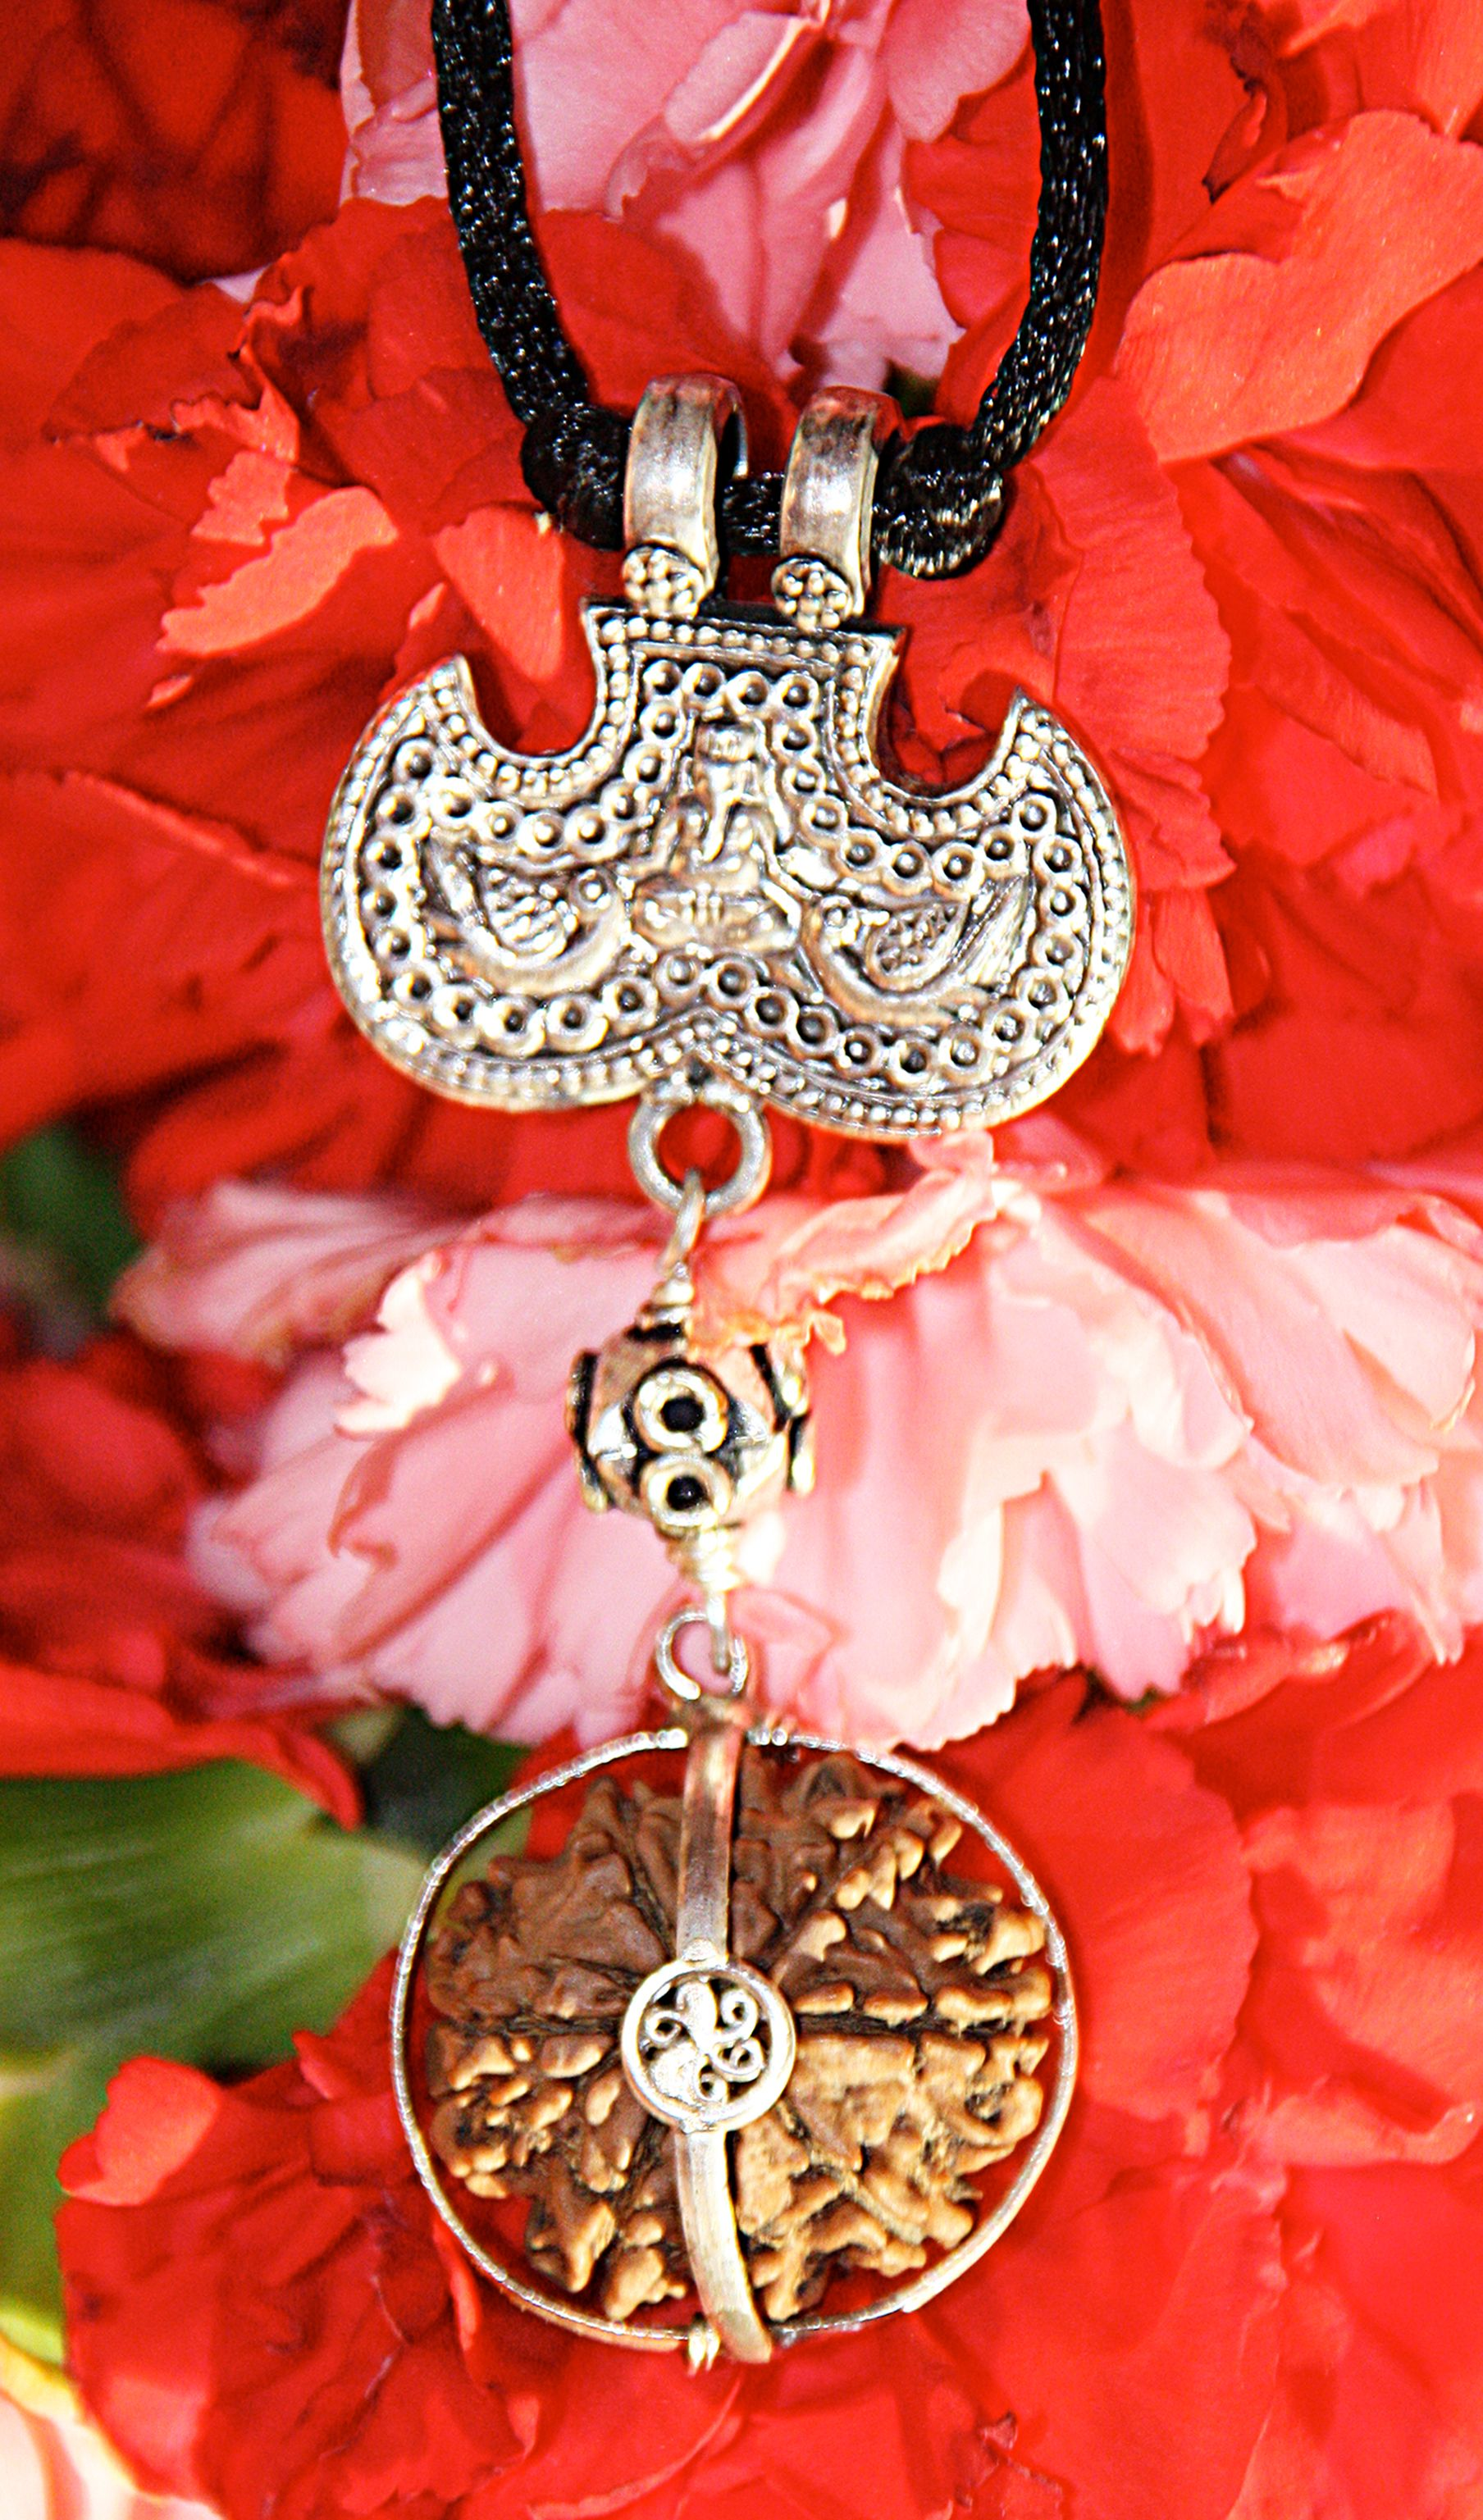 plexus jewelry fertility tiger listing pendant il fullxfull creativity power necklace solar macrame eye tigers necklacesolar